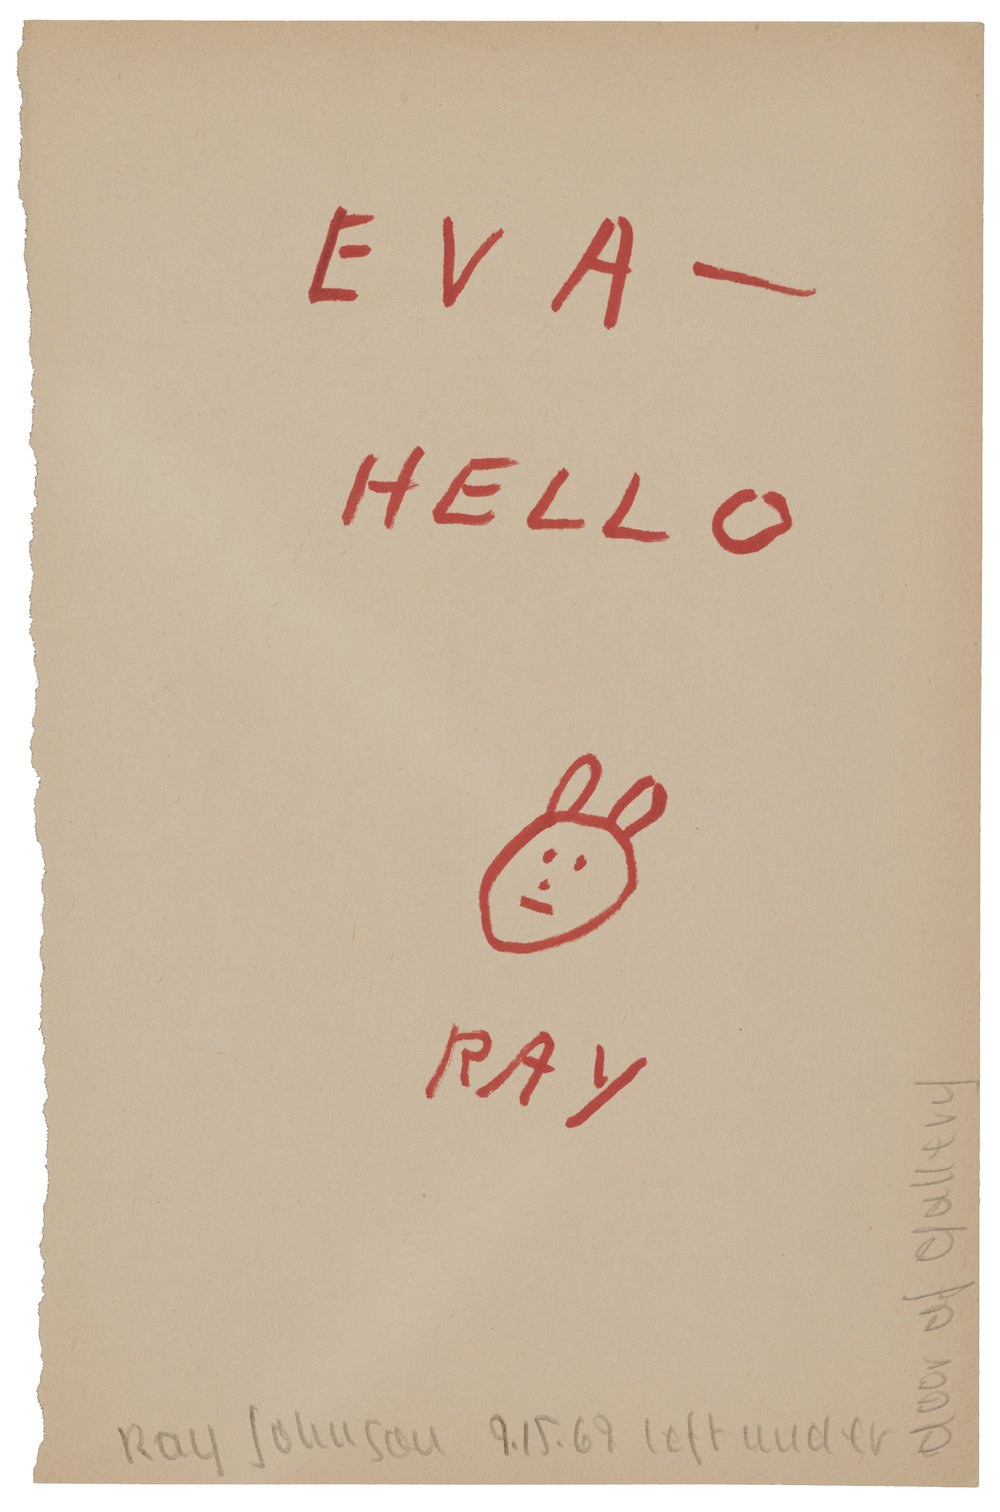 Ray Johnson (83),  letter to Eva Lee, September 15, 1969